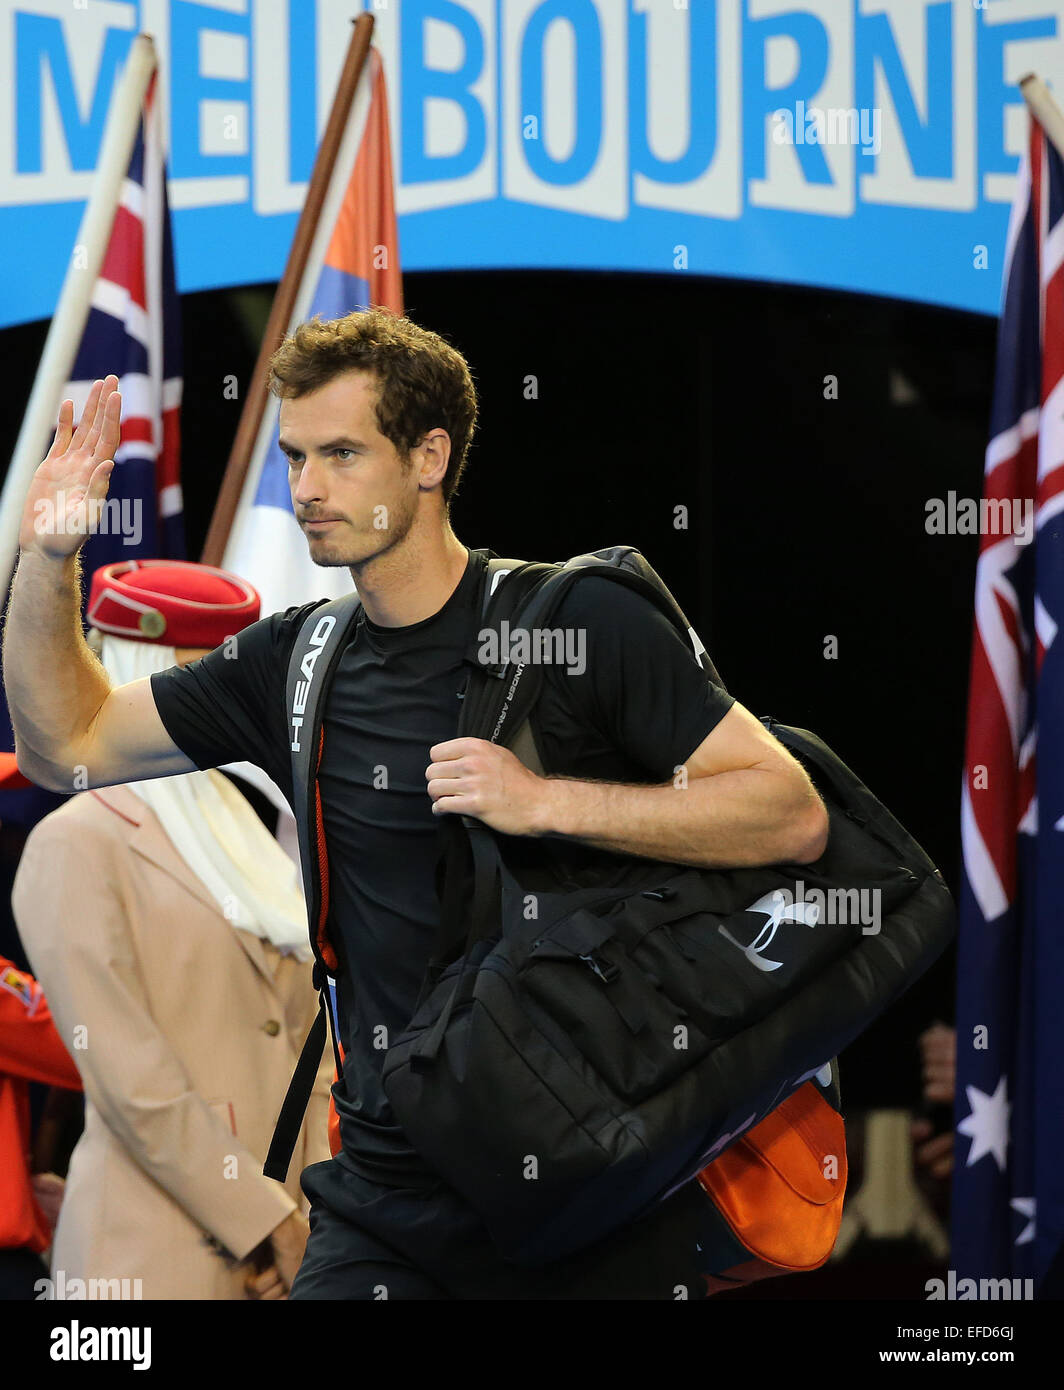 Melbourne, Australia. 1st Feb, 2015. Andy Murray of Great Britain enters the court before his men's singles - Stock Image